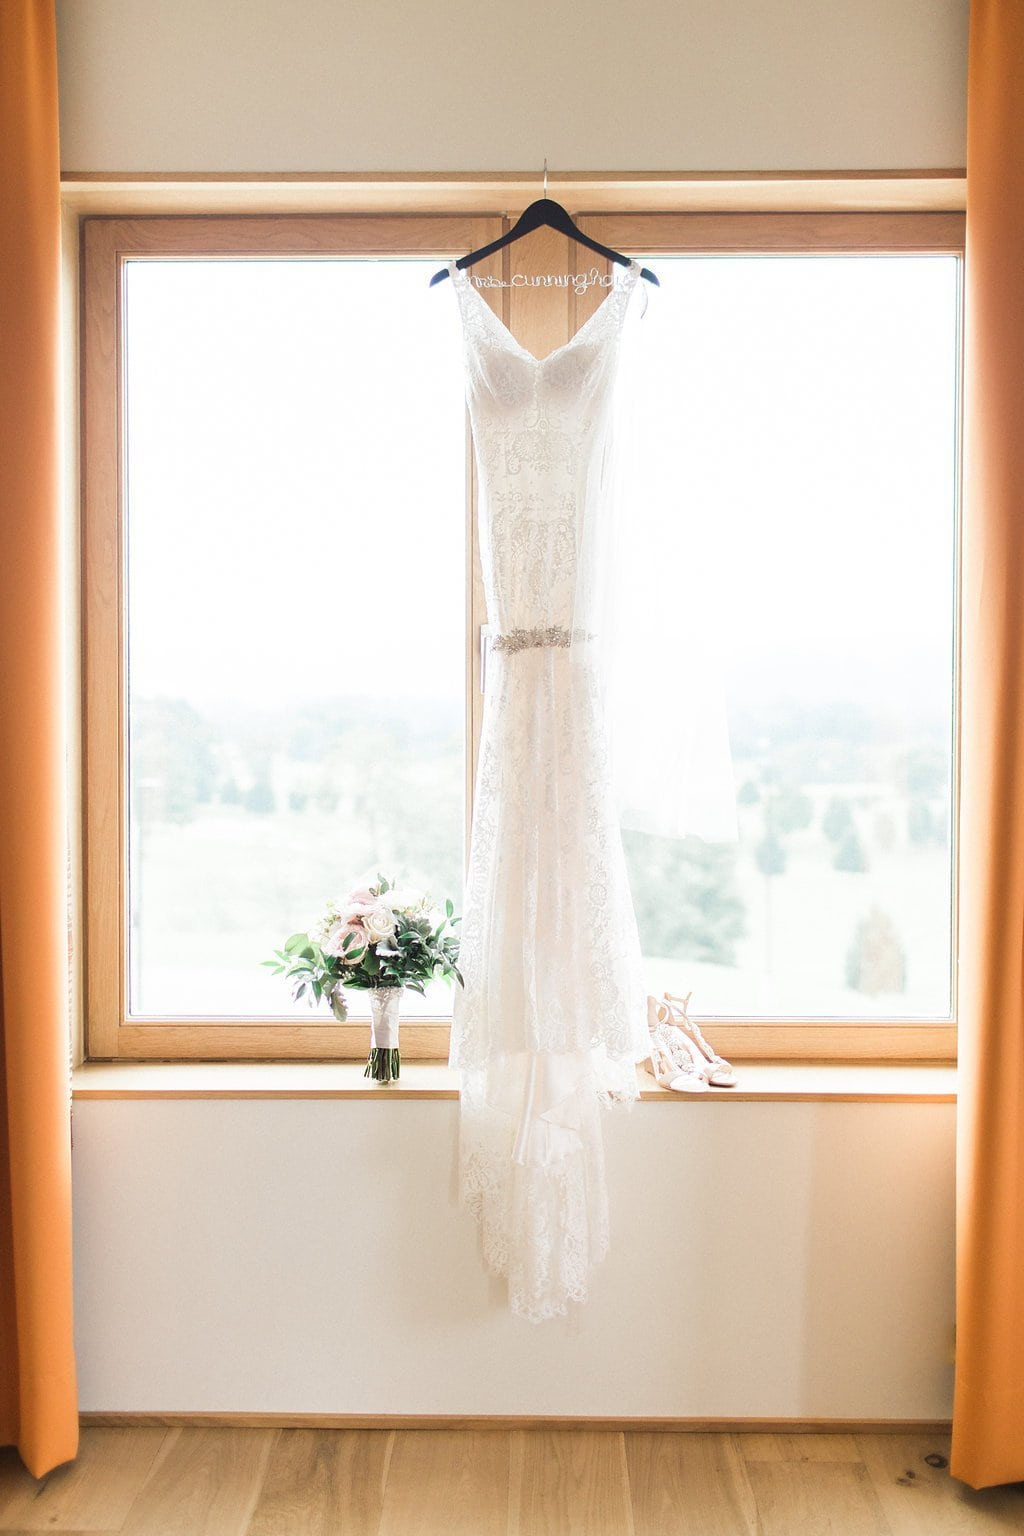 Wedding dress hanging in window with shoes and bouquet